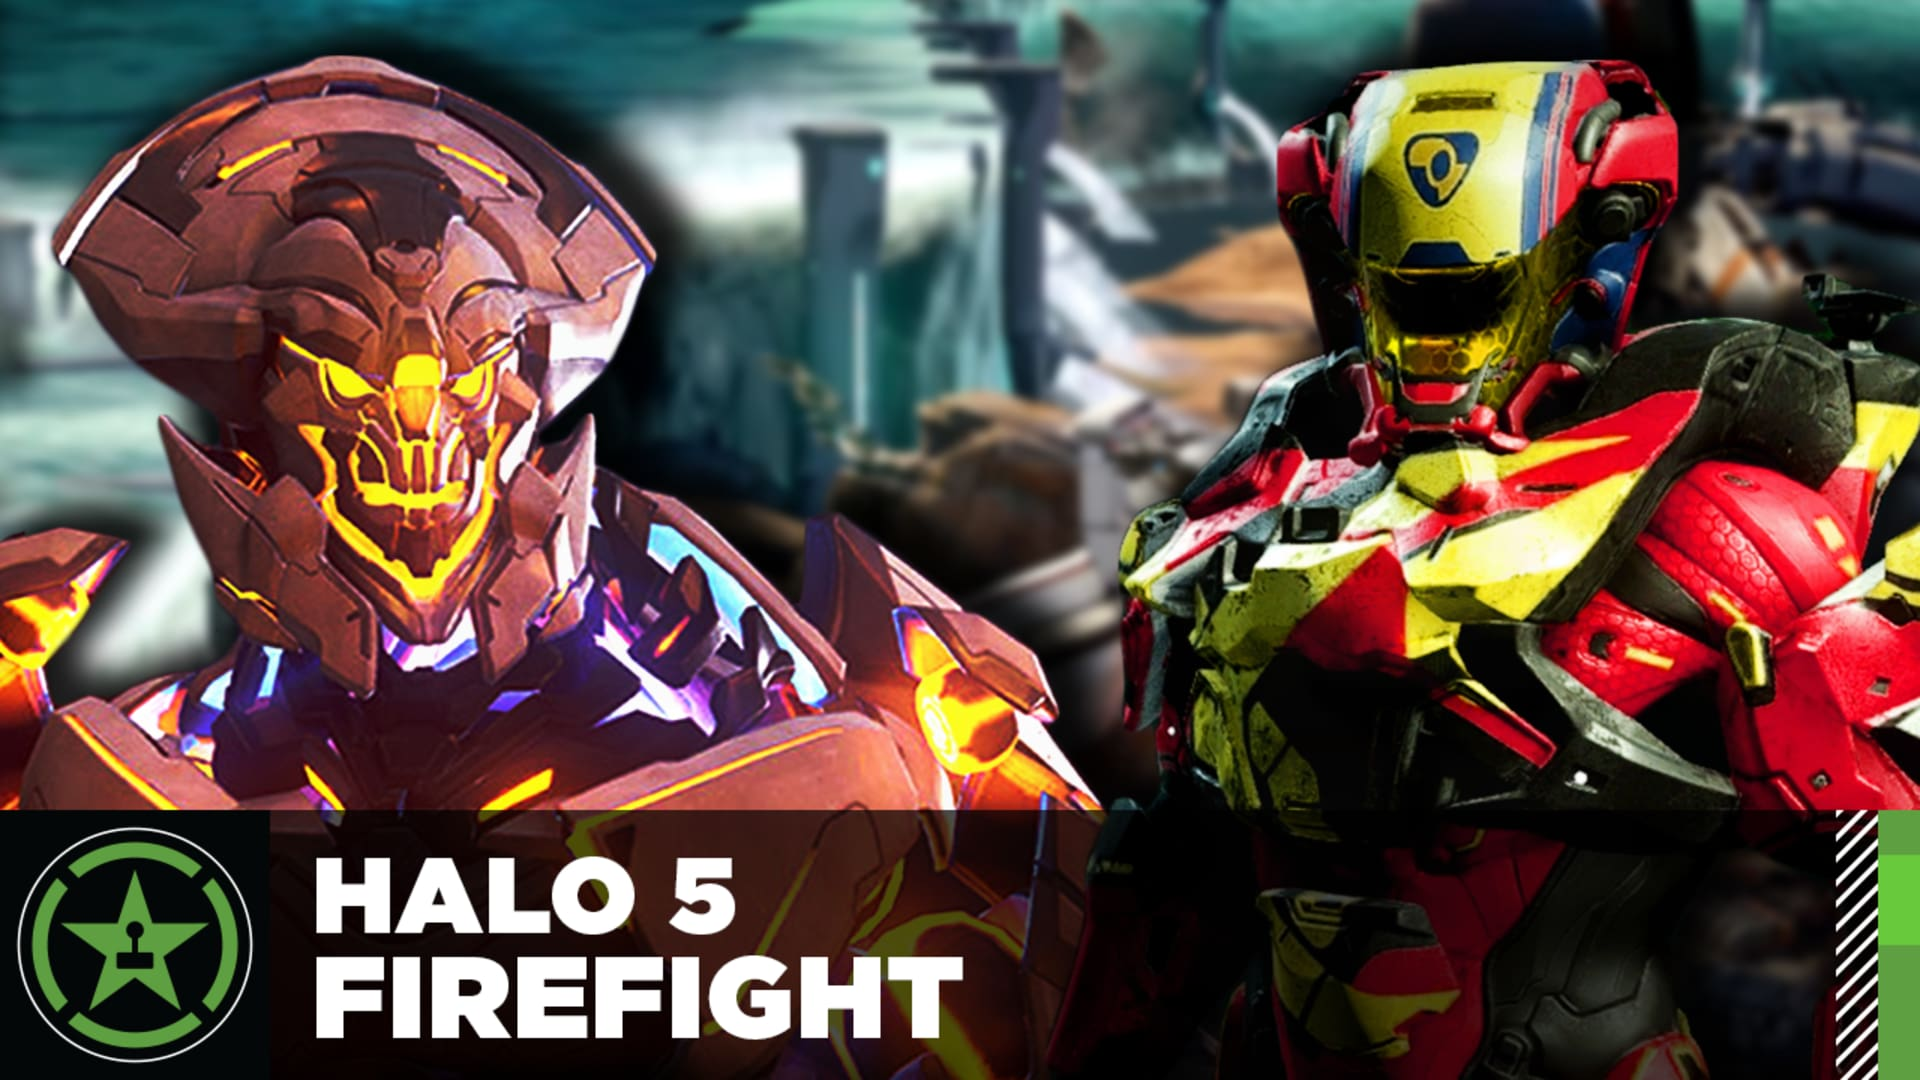 Halo 5: Firefight Beta - Rooster Teeth